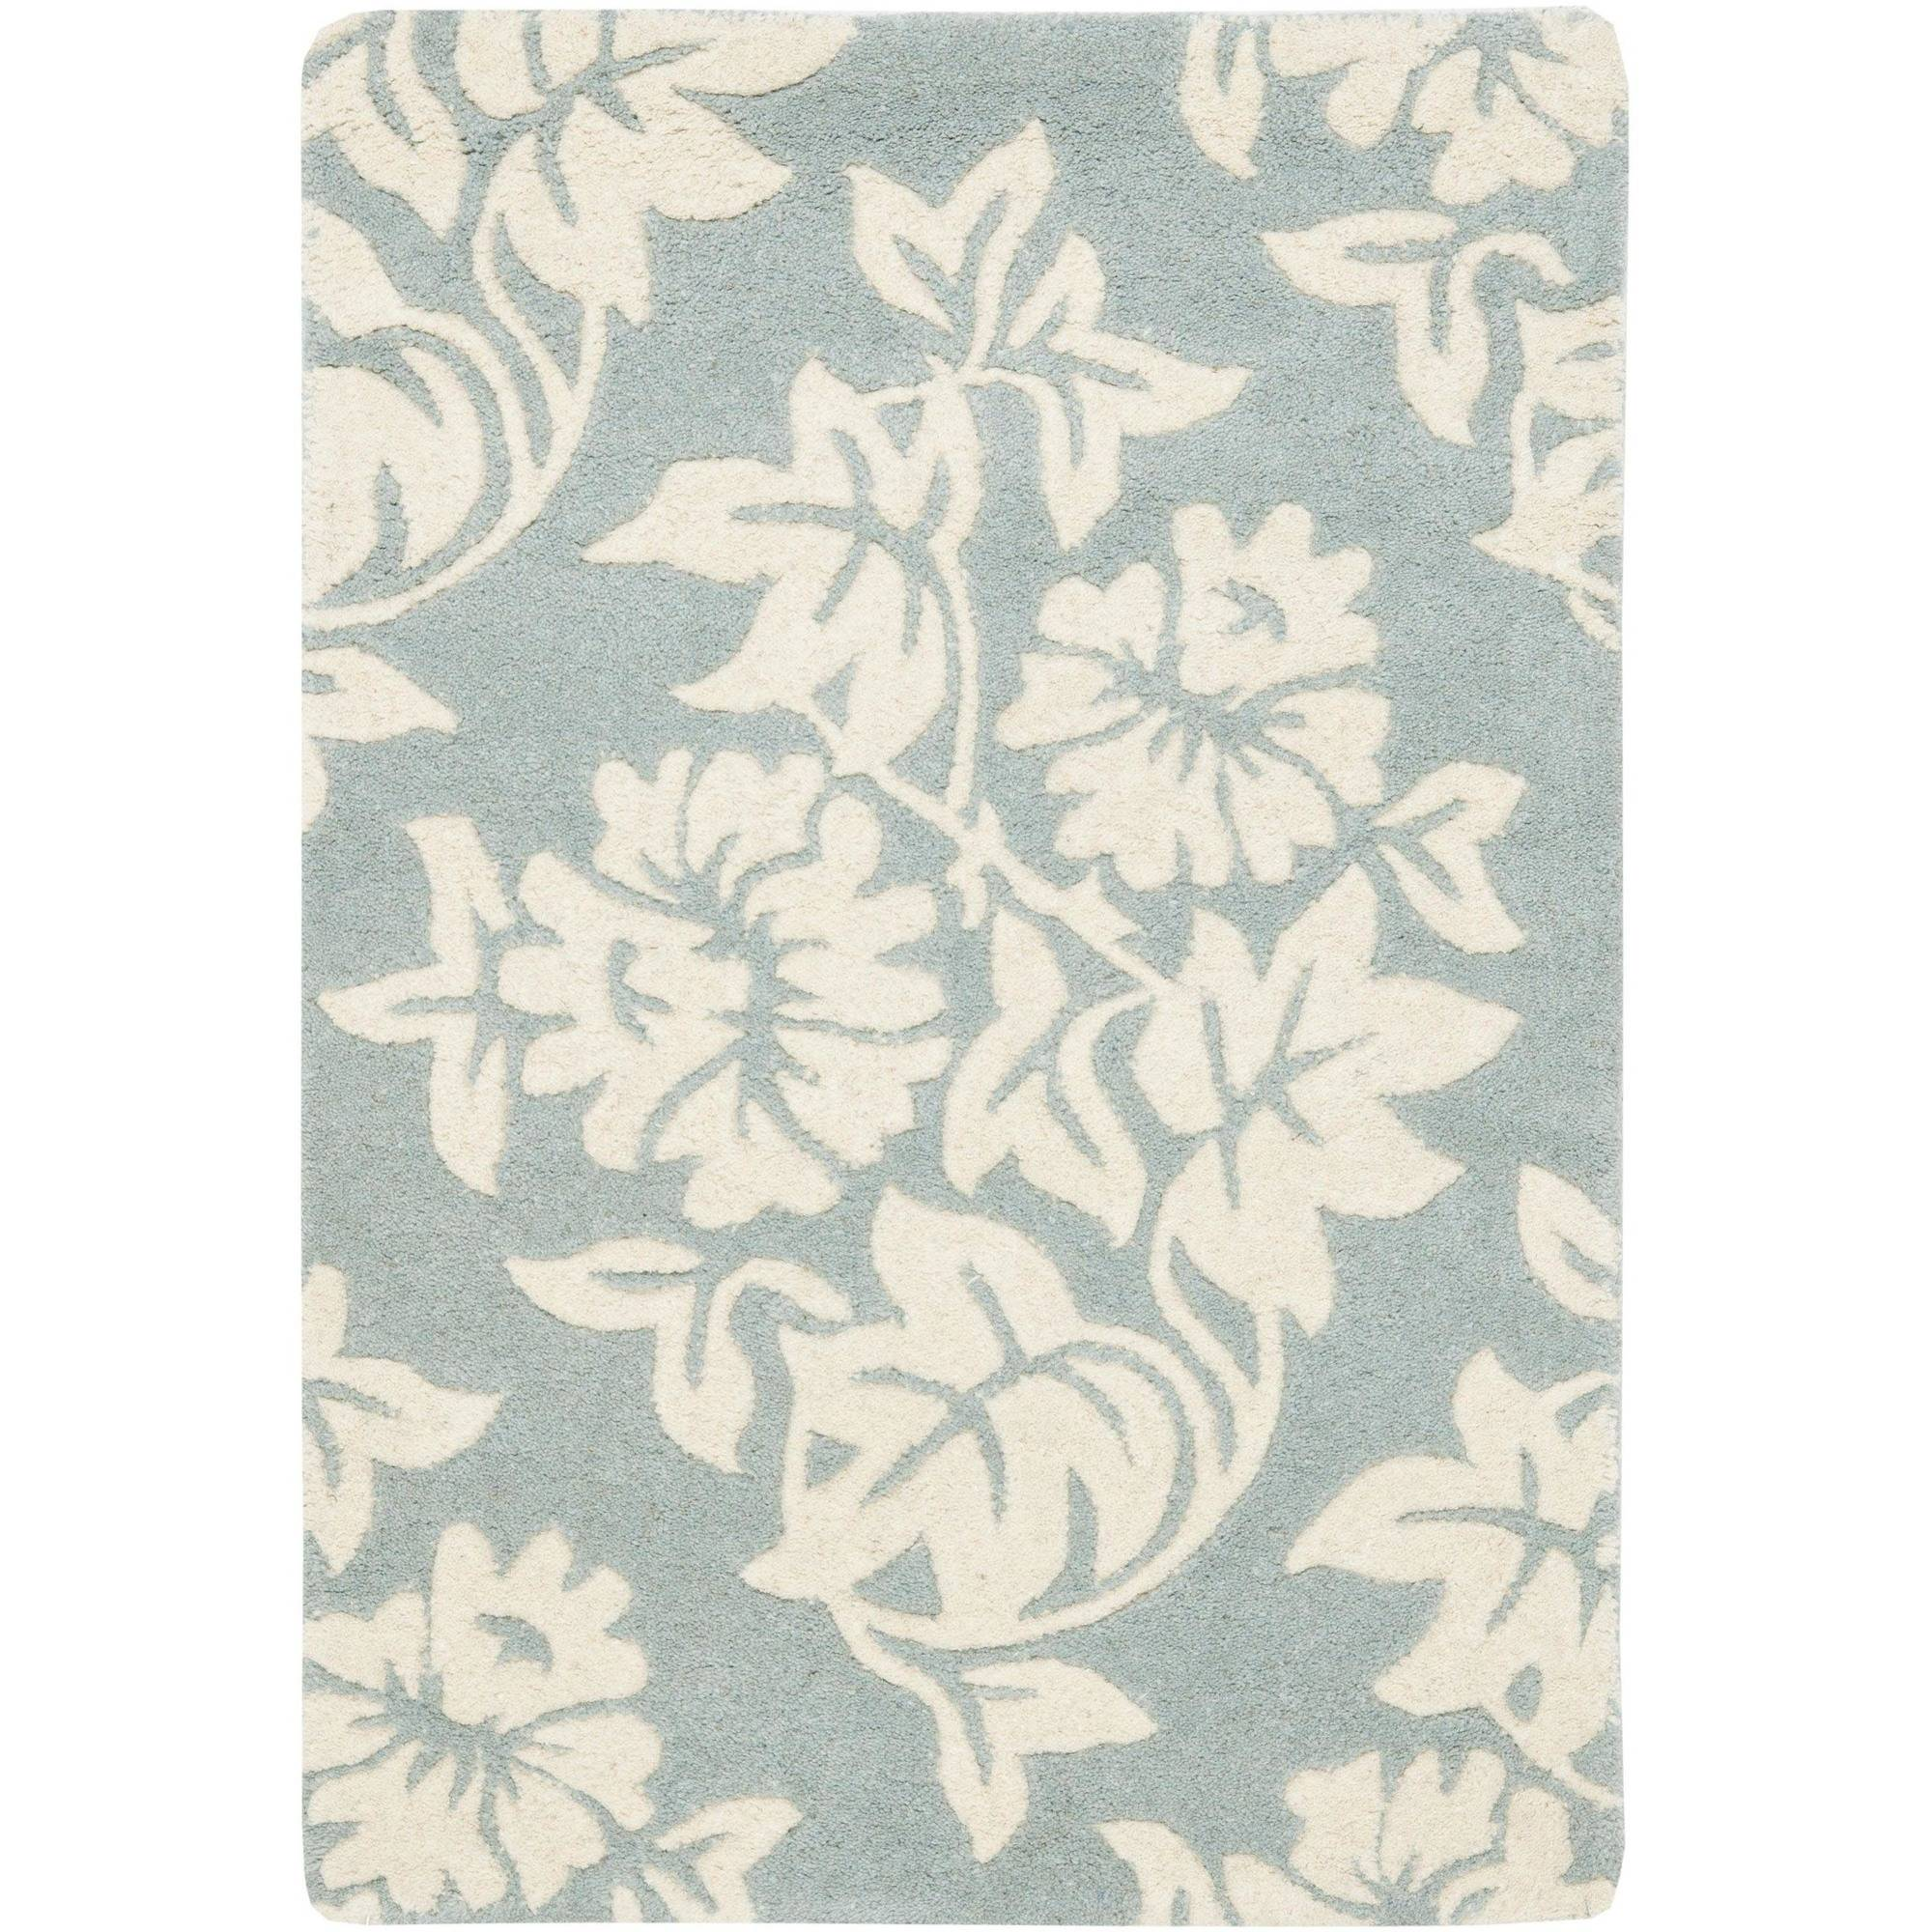 Safavieh Soho Gavin Floral Wool Area Rug or Runner by Safavieh